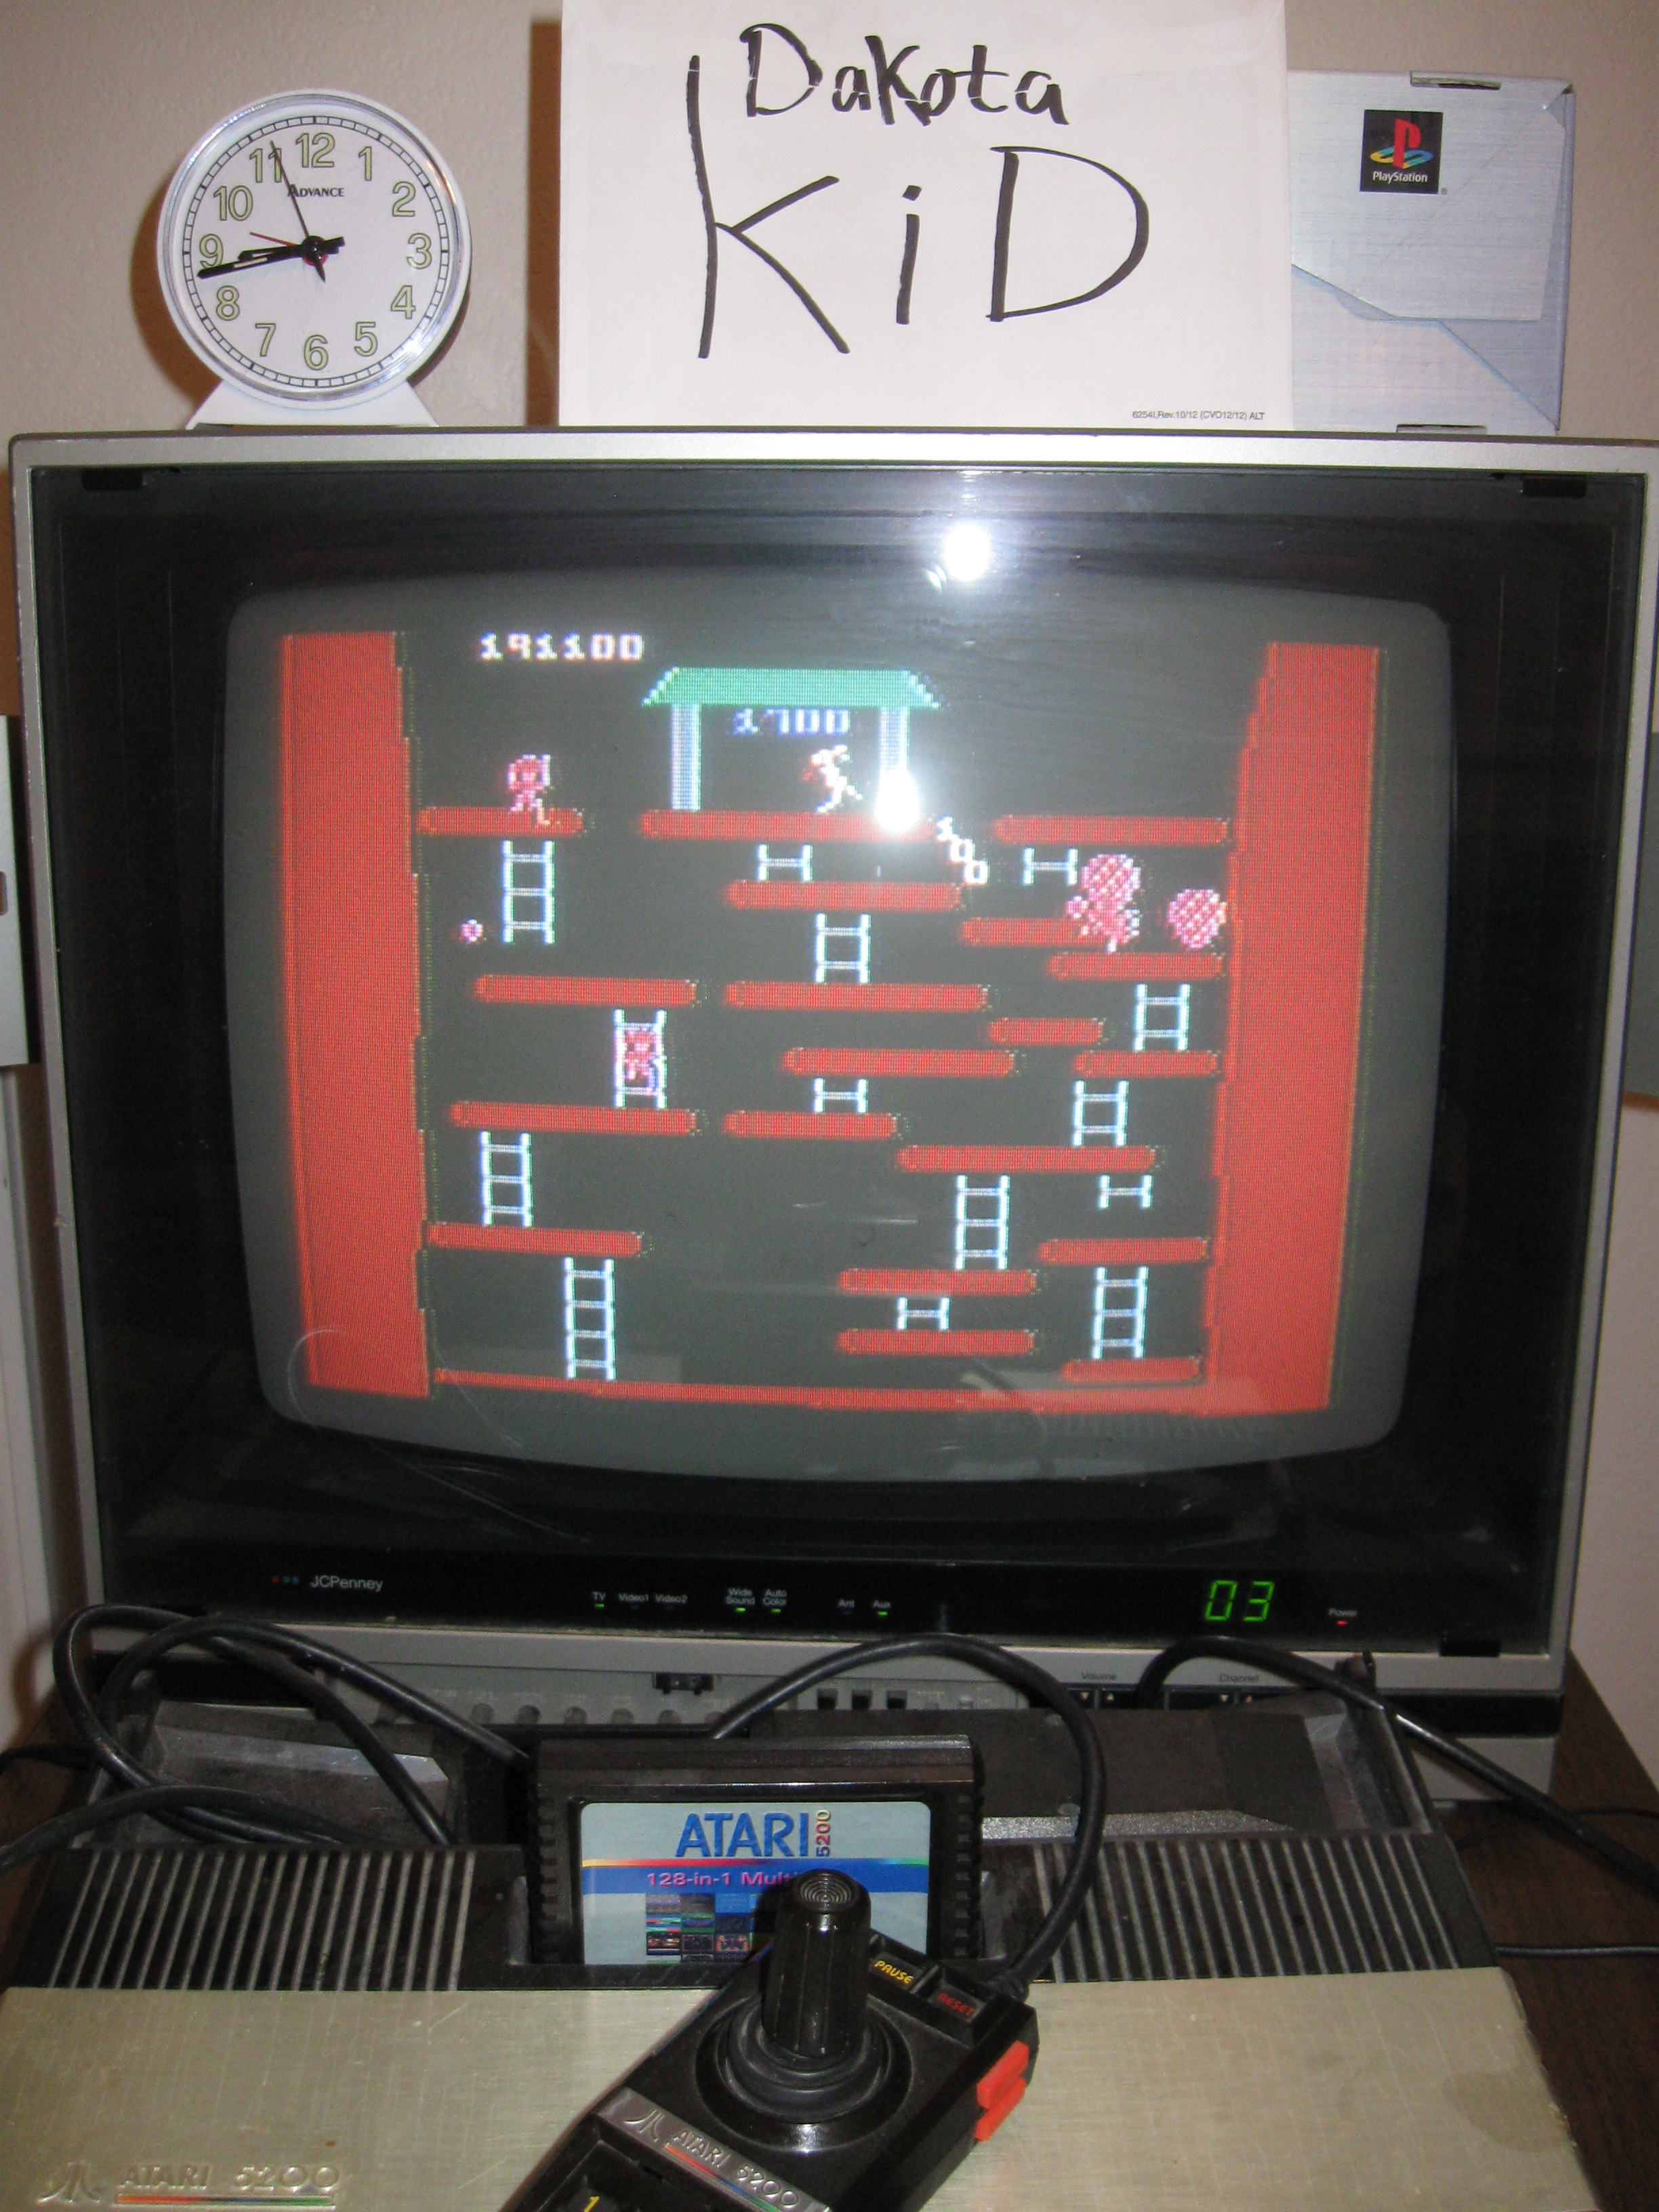 DakotaKid: Kangaroo: Novice (Atari 5200) 191,100 points on 2016-04-13 19:42:05